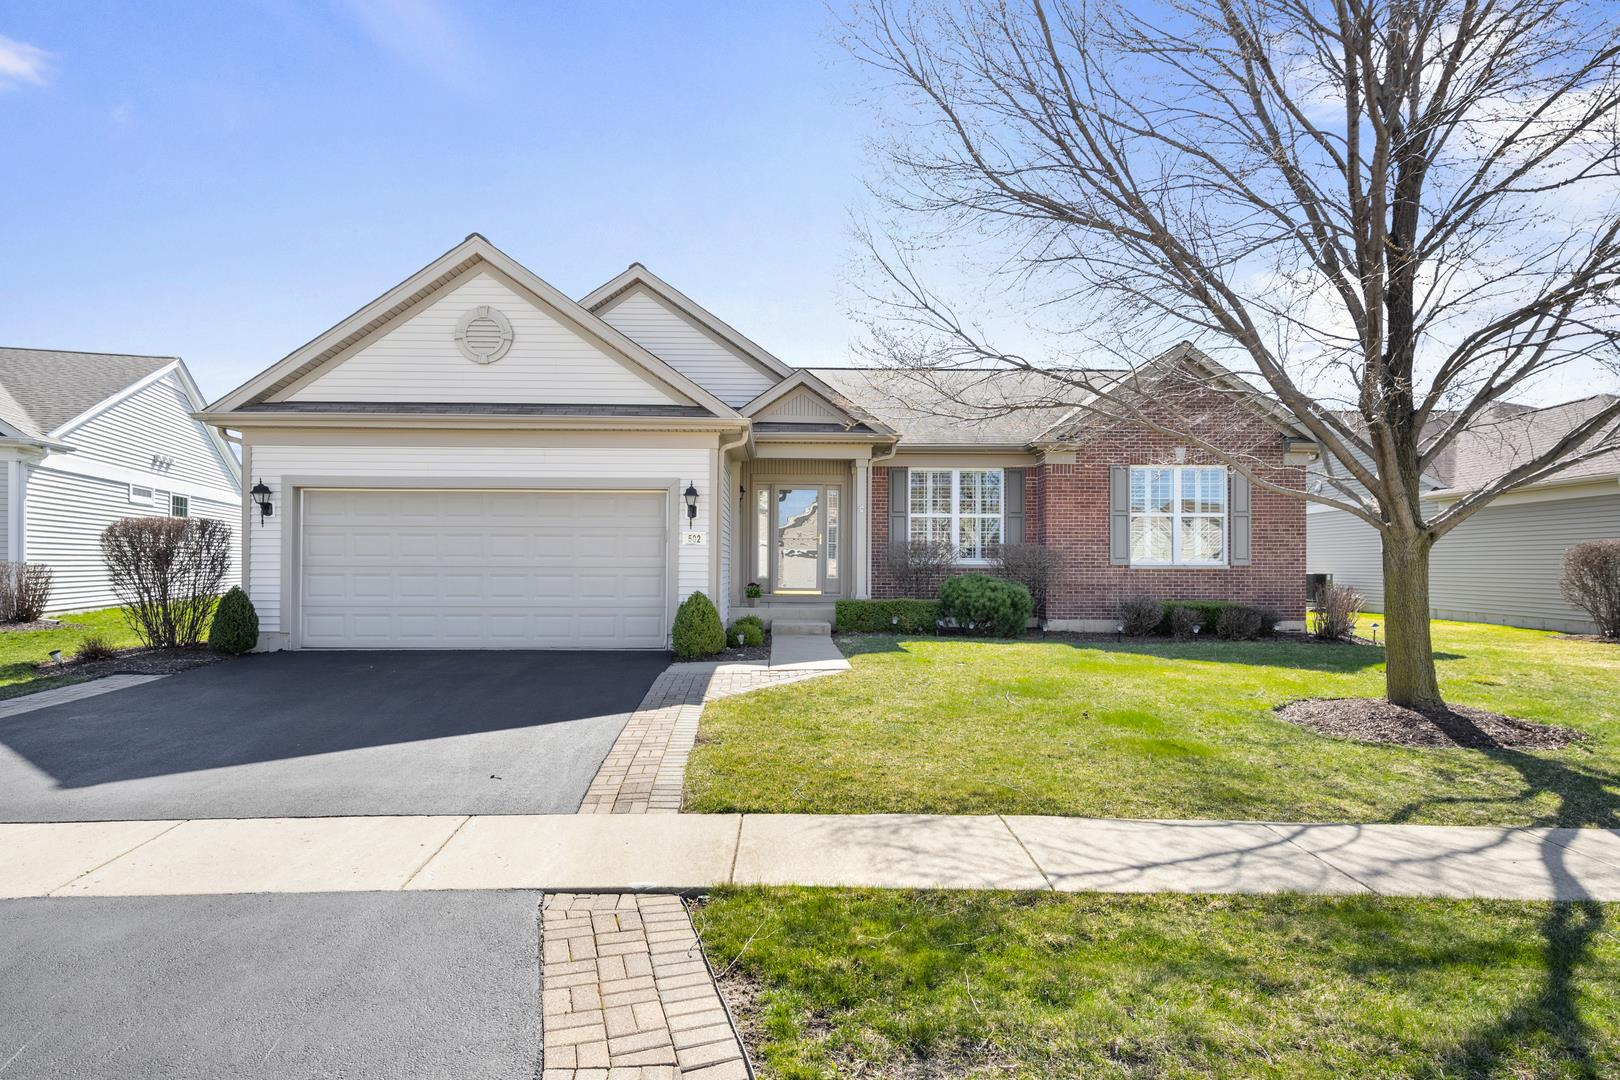 502 Honors Court, Shorewood, IL 60404 - #: 11042138